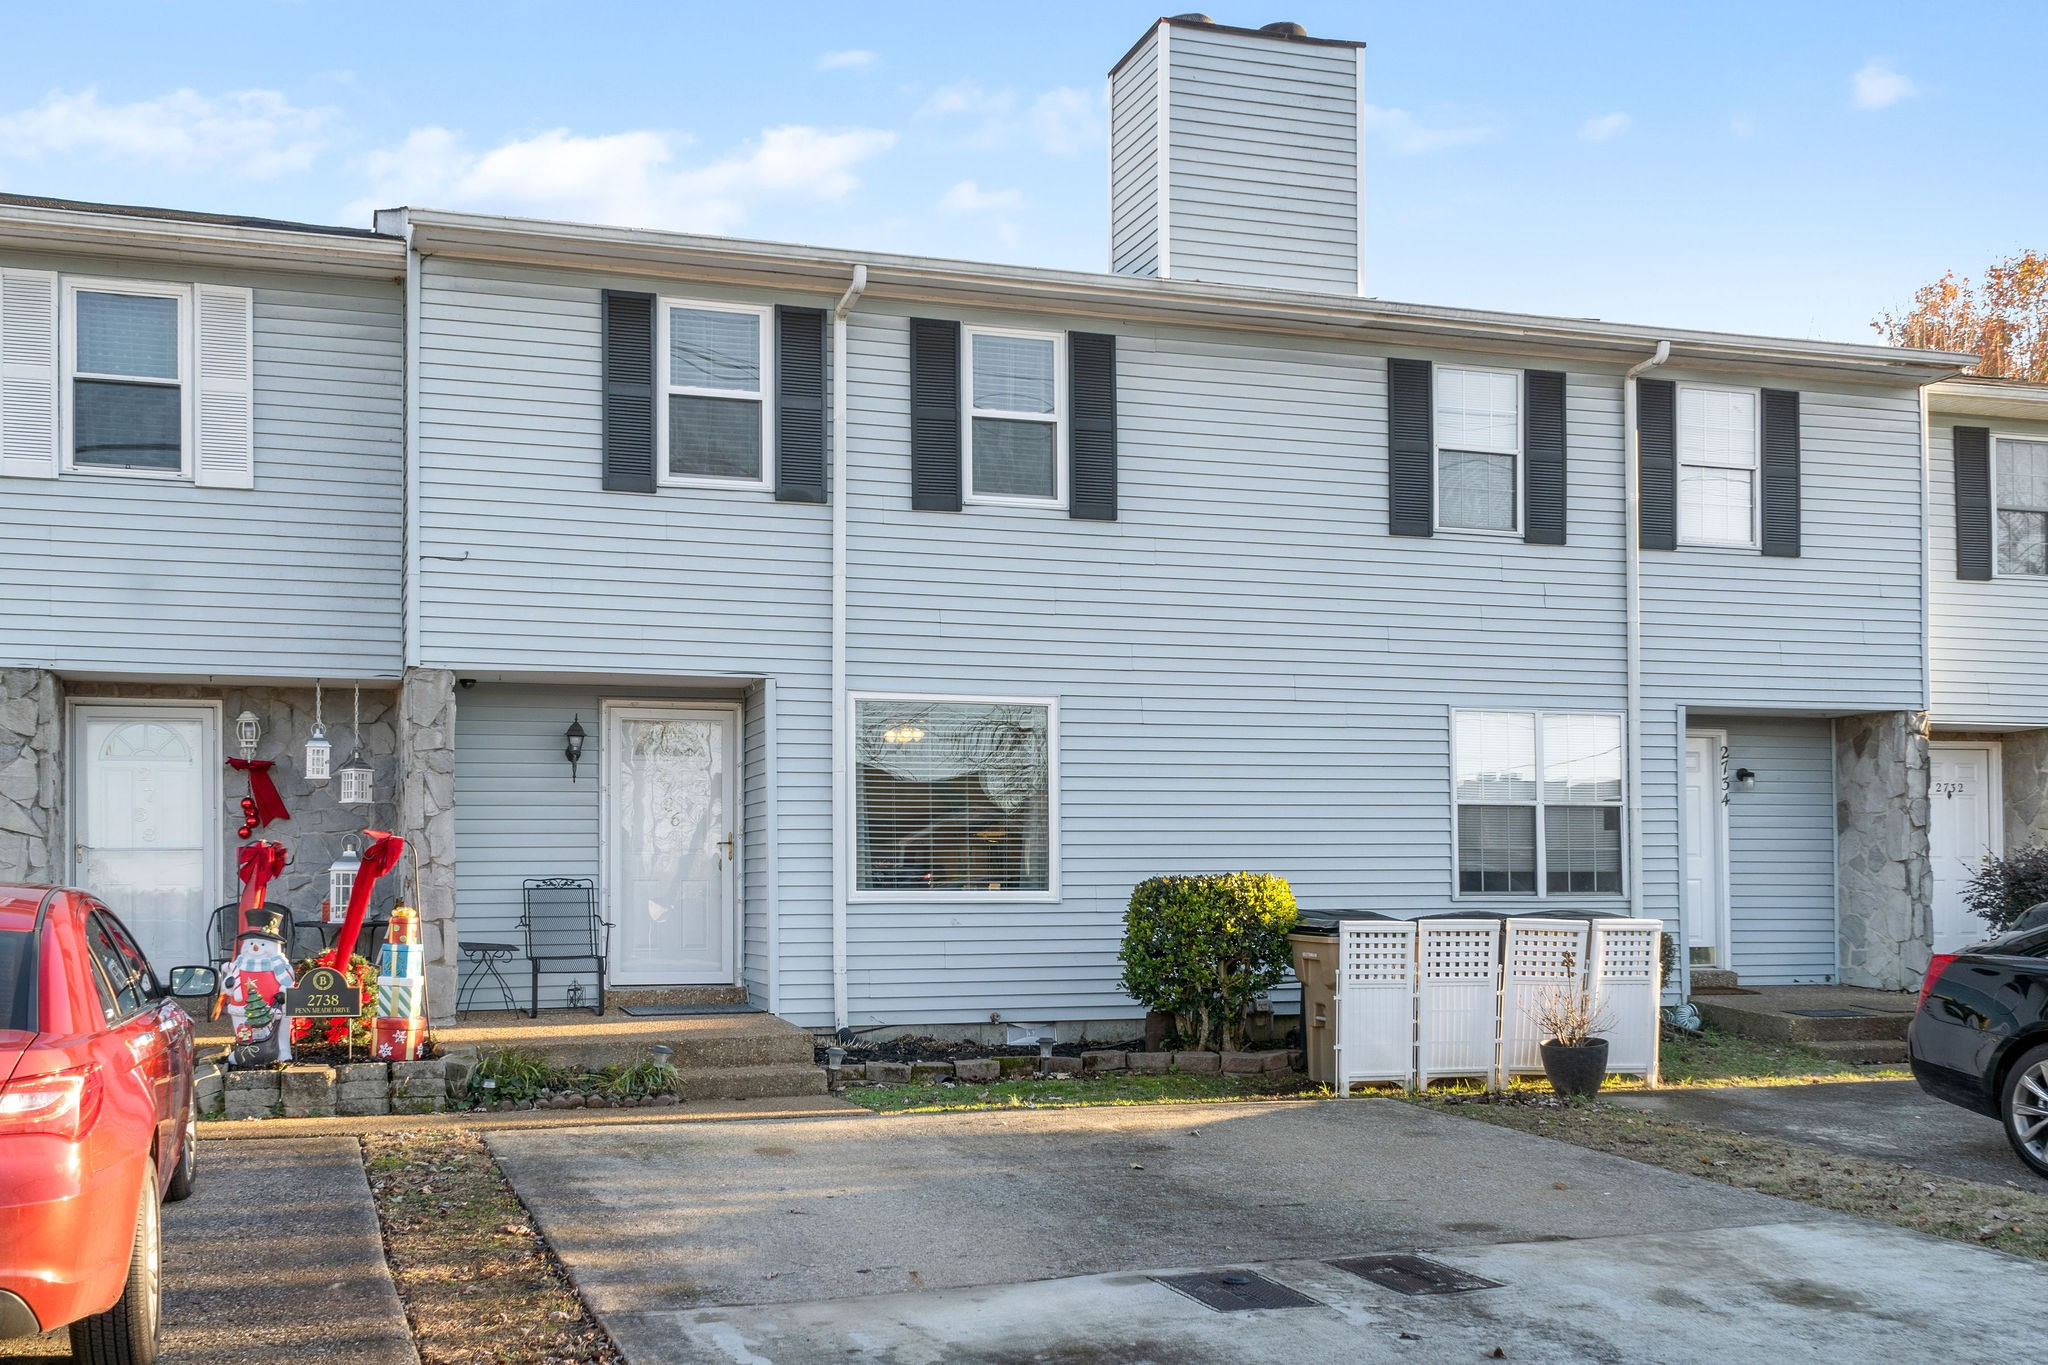 Check Out This Picture Perfect Townhome - No Backyard Neighbors - Privacy Fenced Back Patio - Hot Tub Conveys - All Stainless Steel Kitchen Appliances Convey - Hardwood Floors - Carpet on Stairs & Second Floor Recently Replaced - MUST SEE!